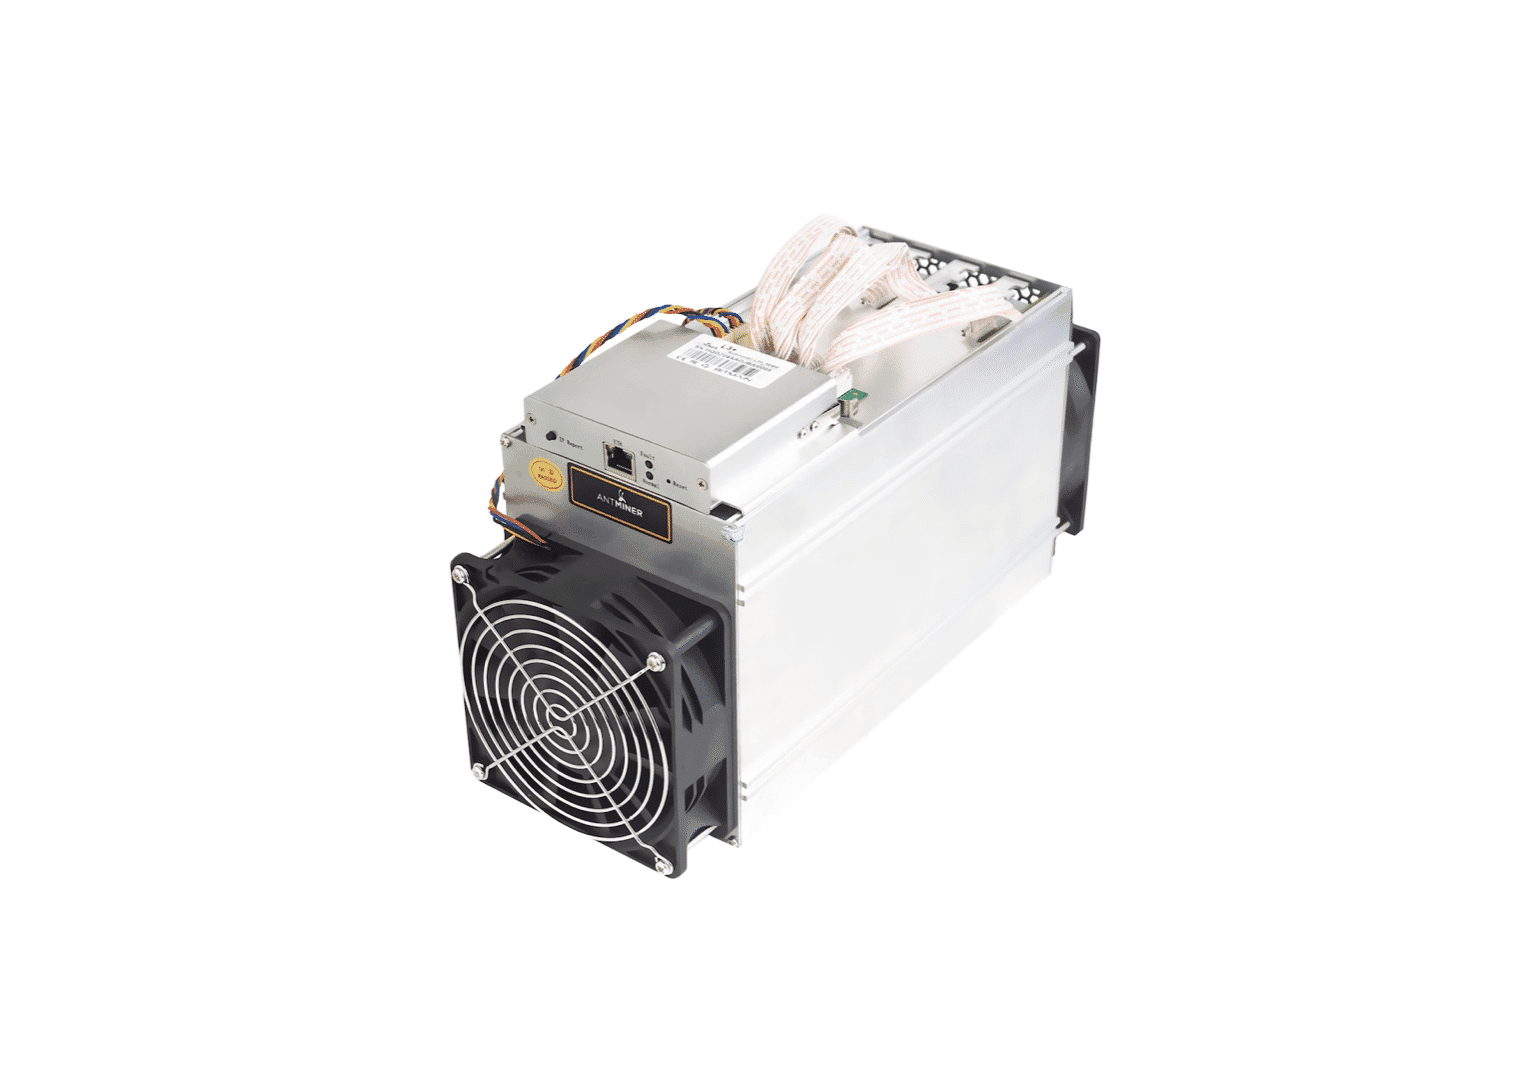 Antminer D3 - Best Dash Mining Hardware Review (2019 updated)